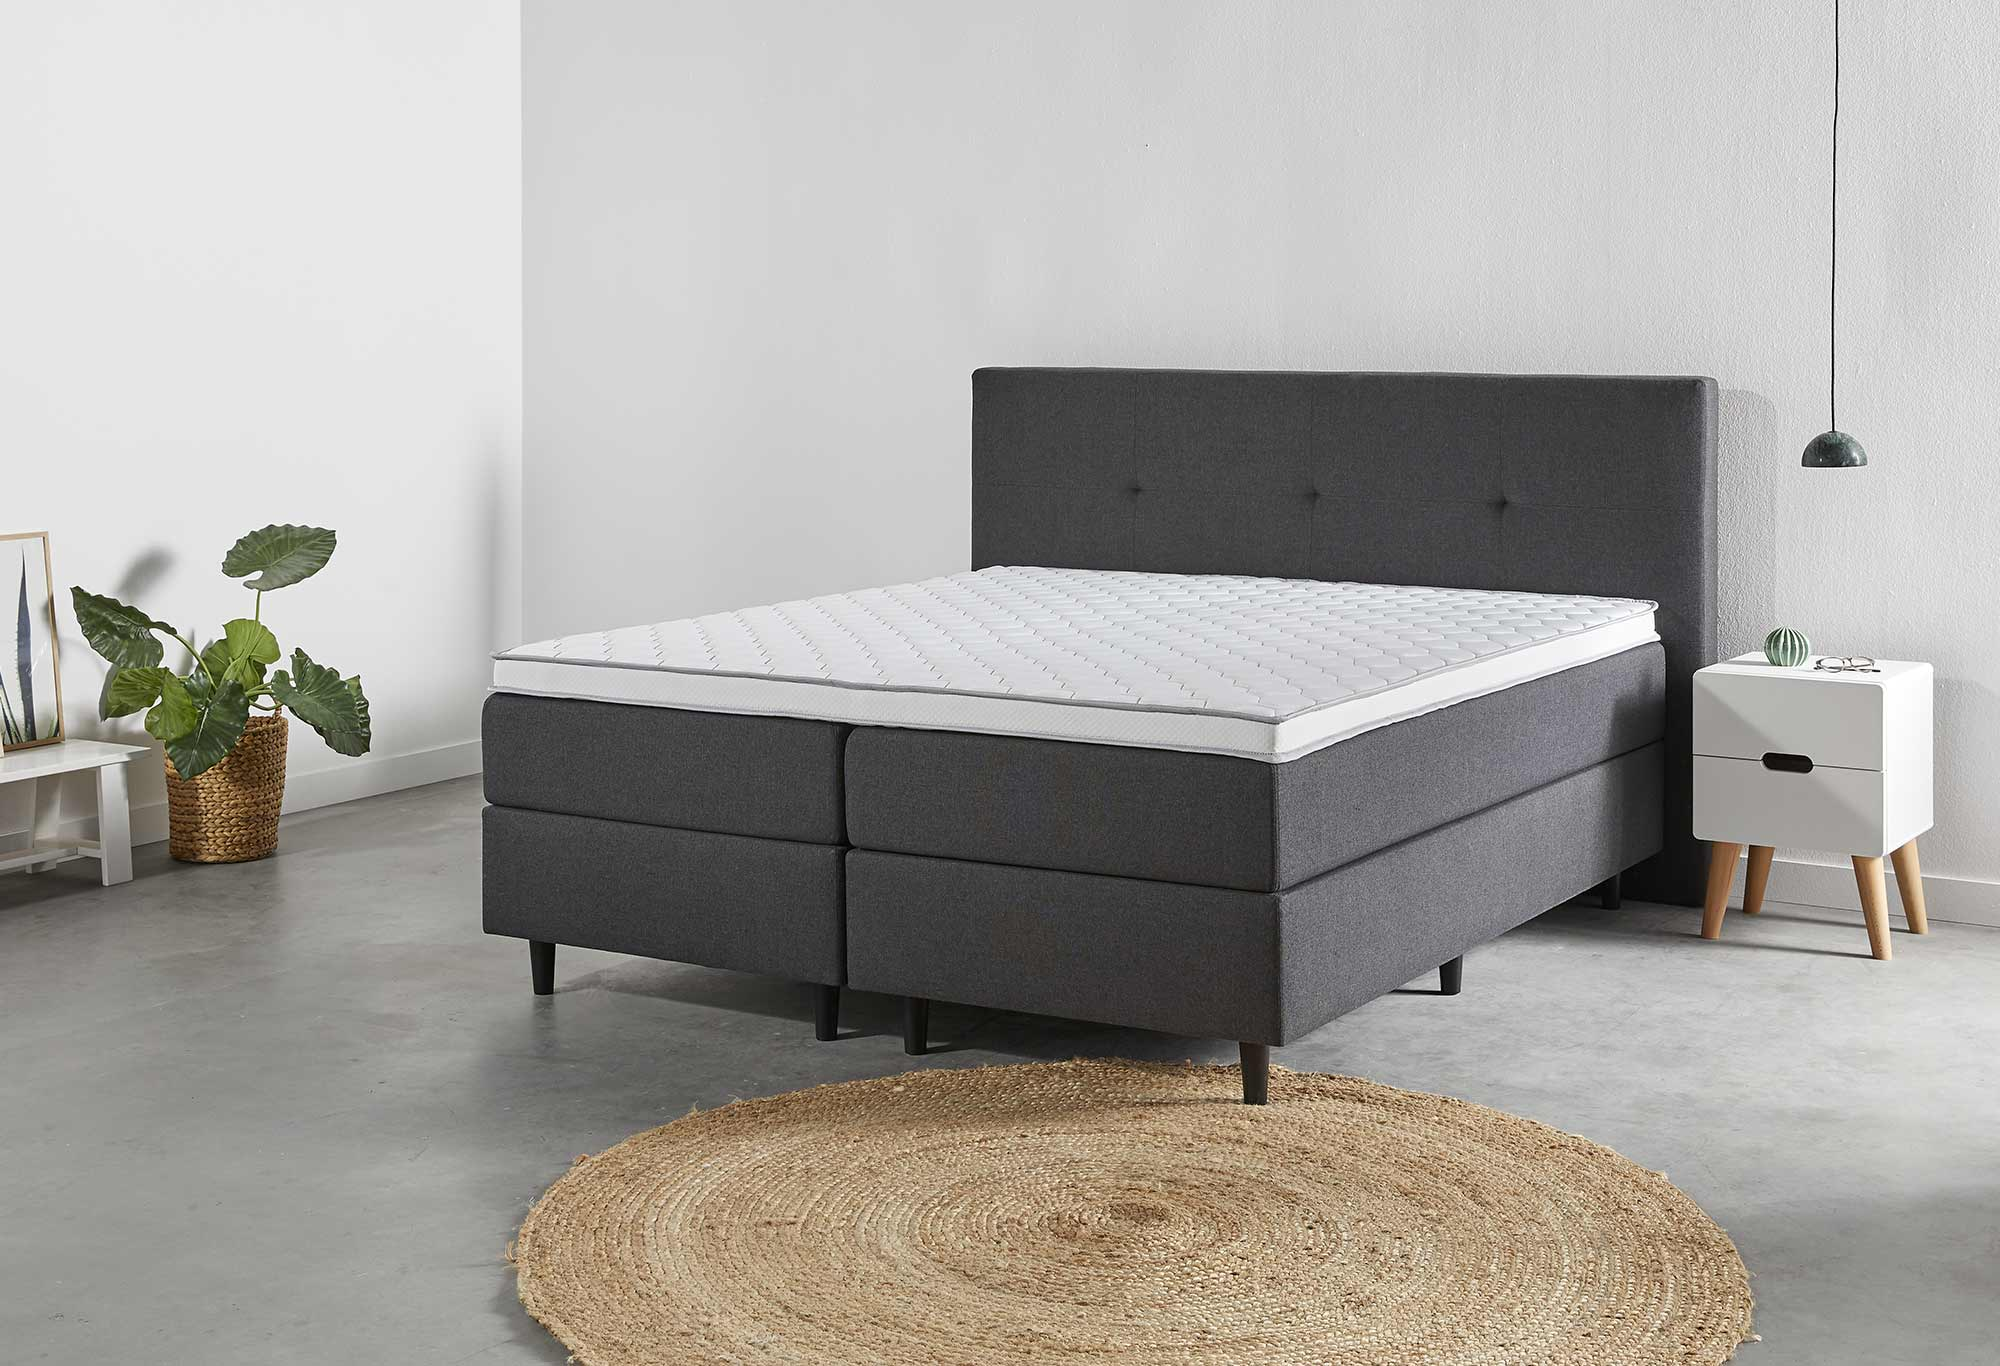 Boxspring Web-Only Spirit Deluxe Detail 01 | Swiss Sense